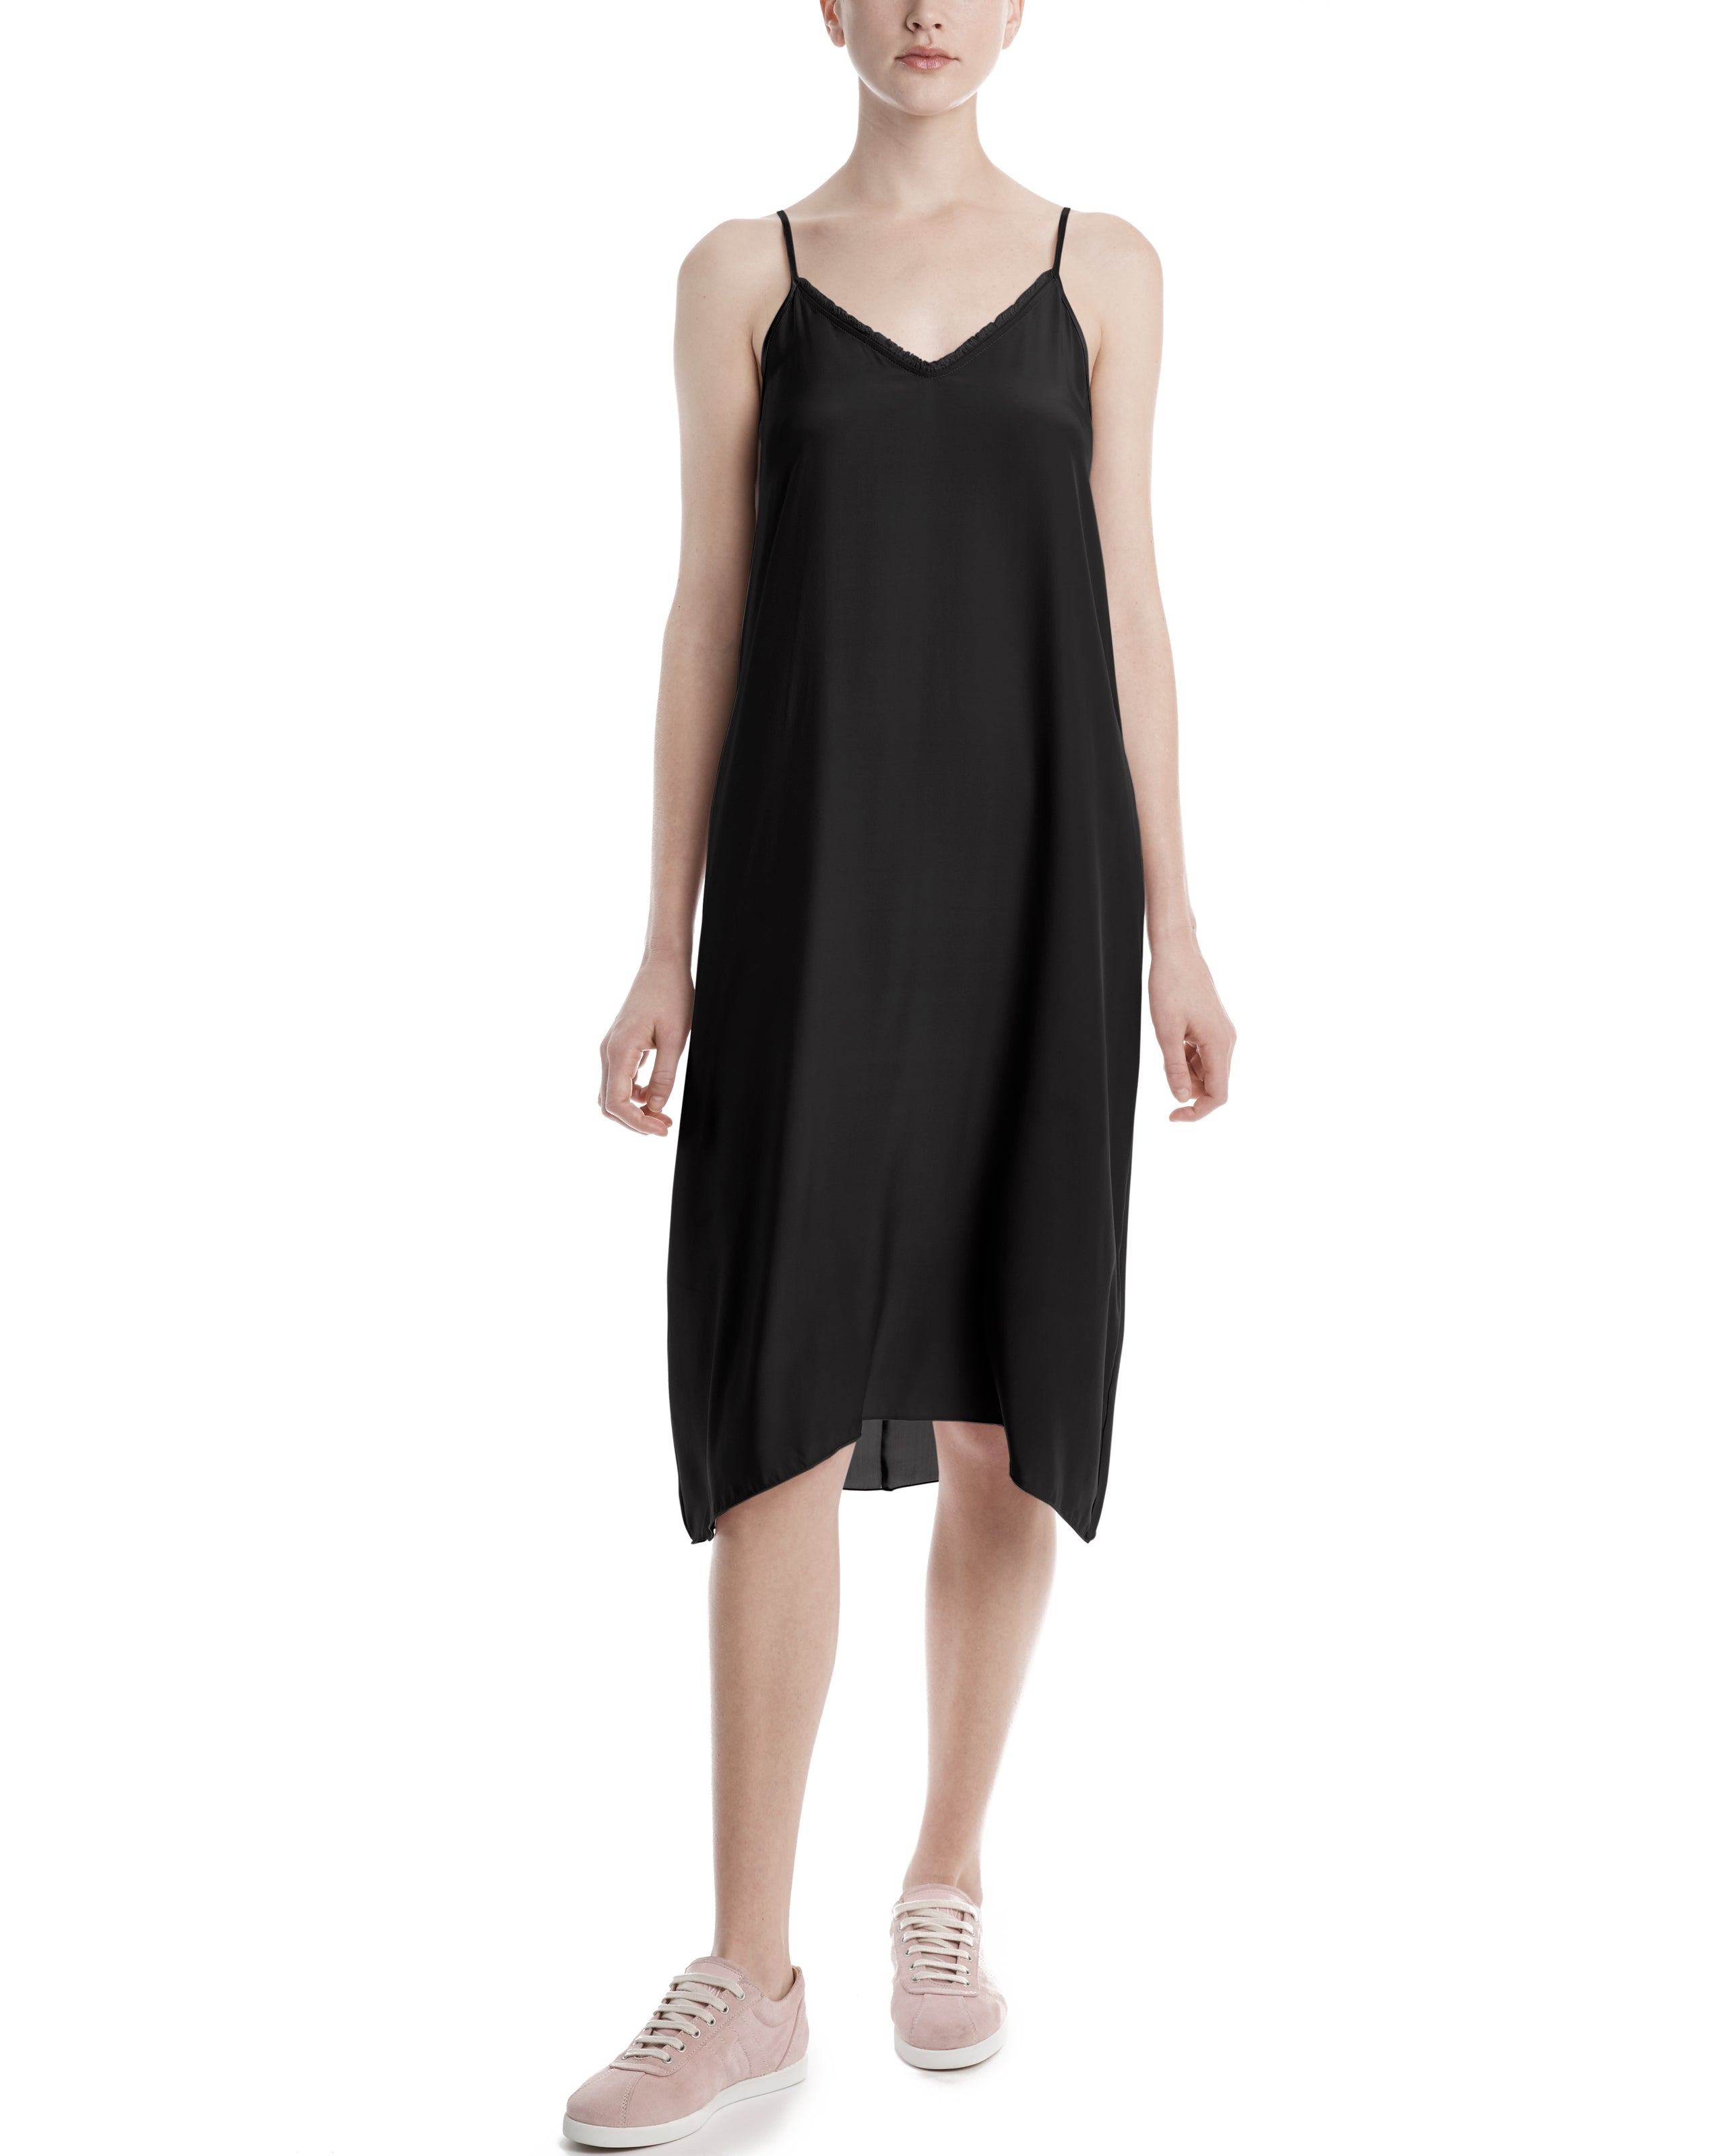 ATM Silk Charmeuse Slip Dress